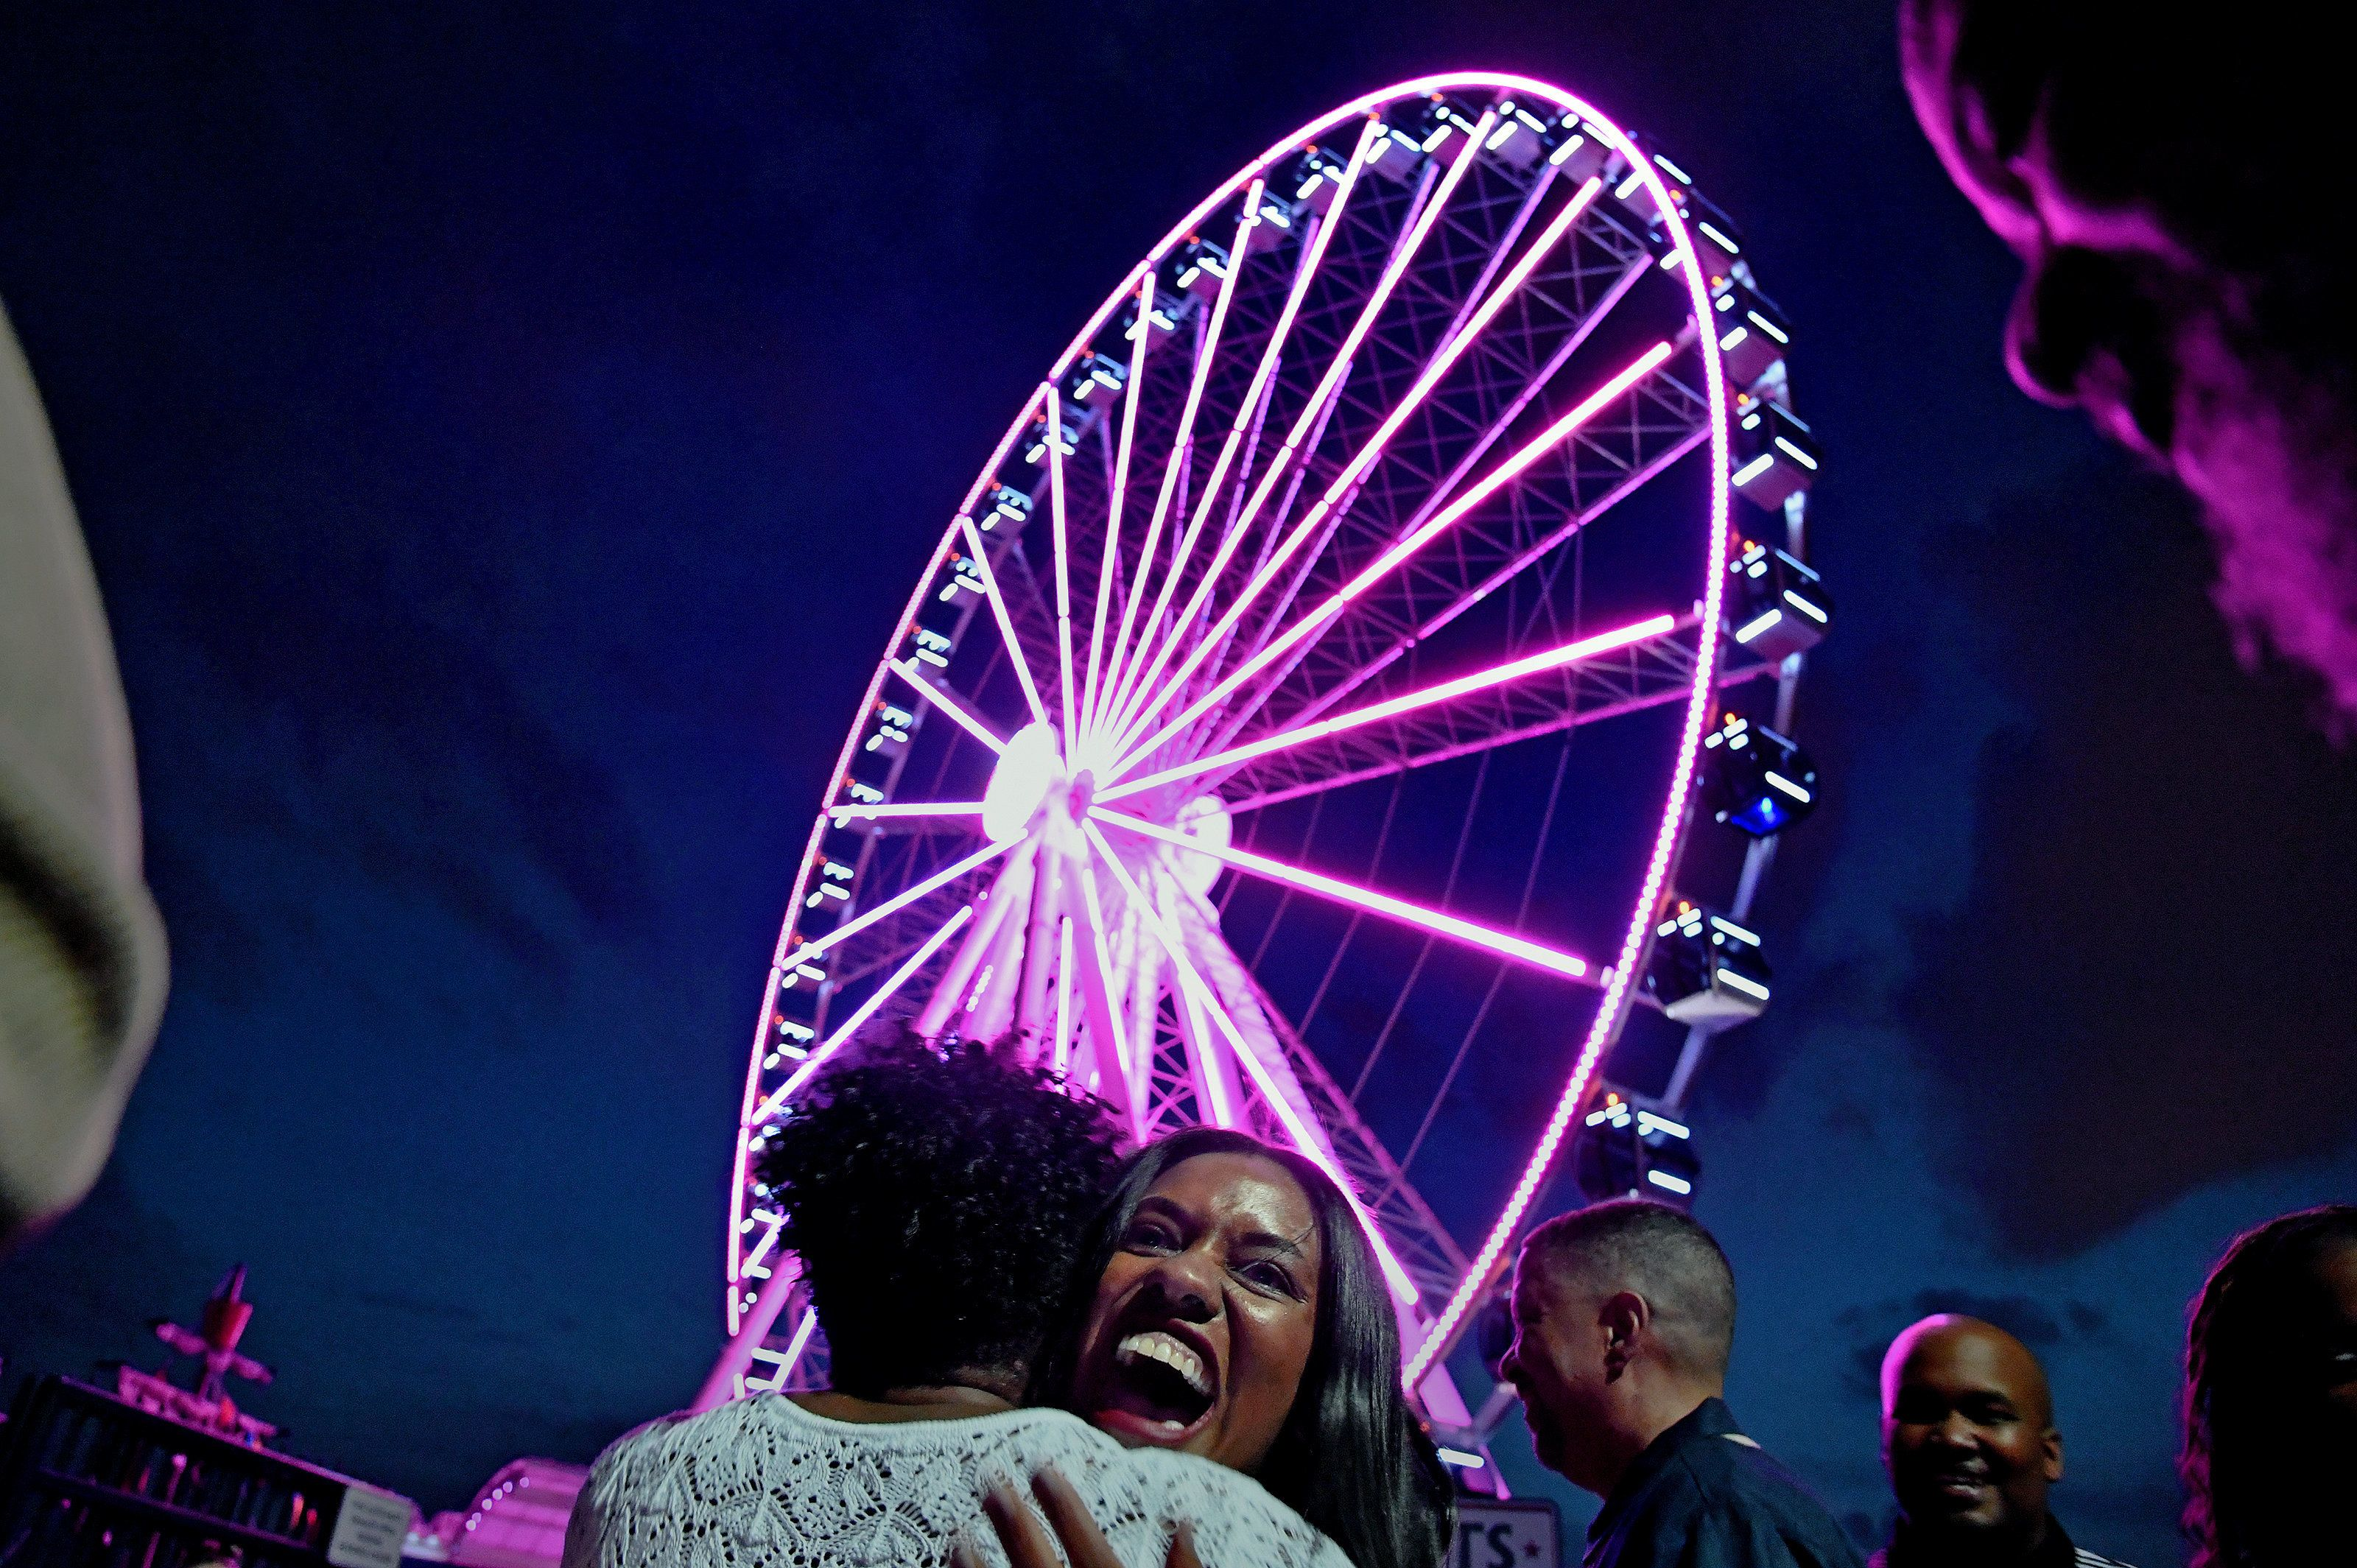 A couple from the Washington, D.C., area learned the sex of their unborn baby via the lights on a Ferris wheel at National Ha